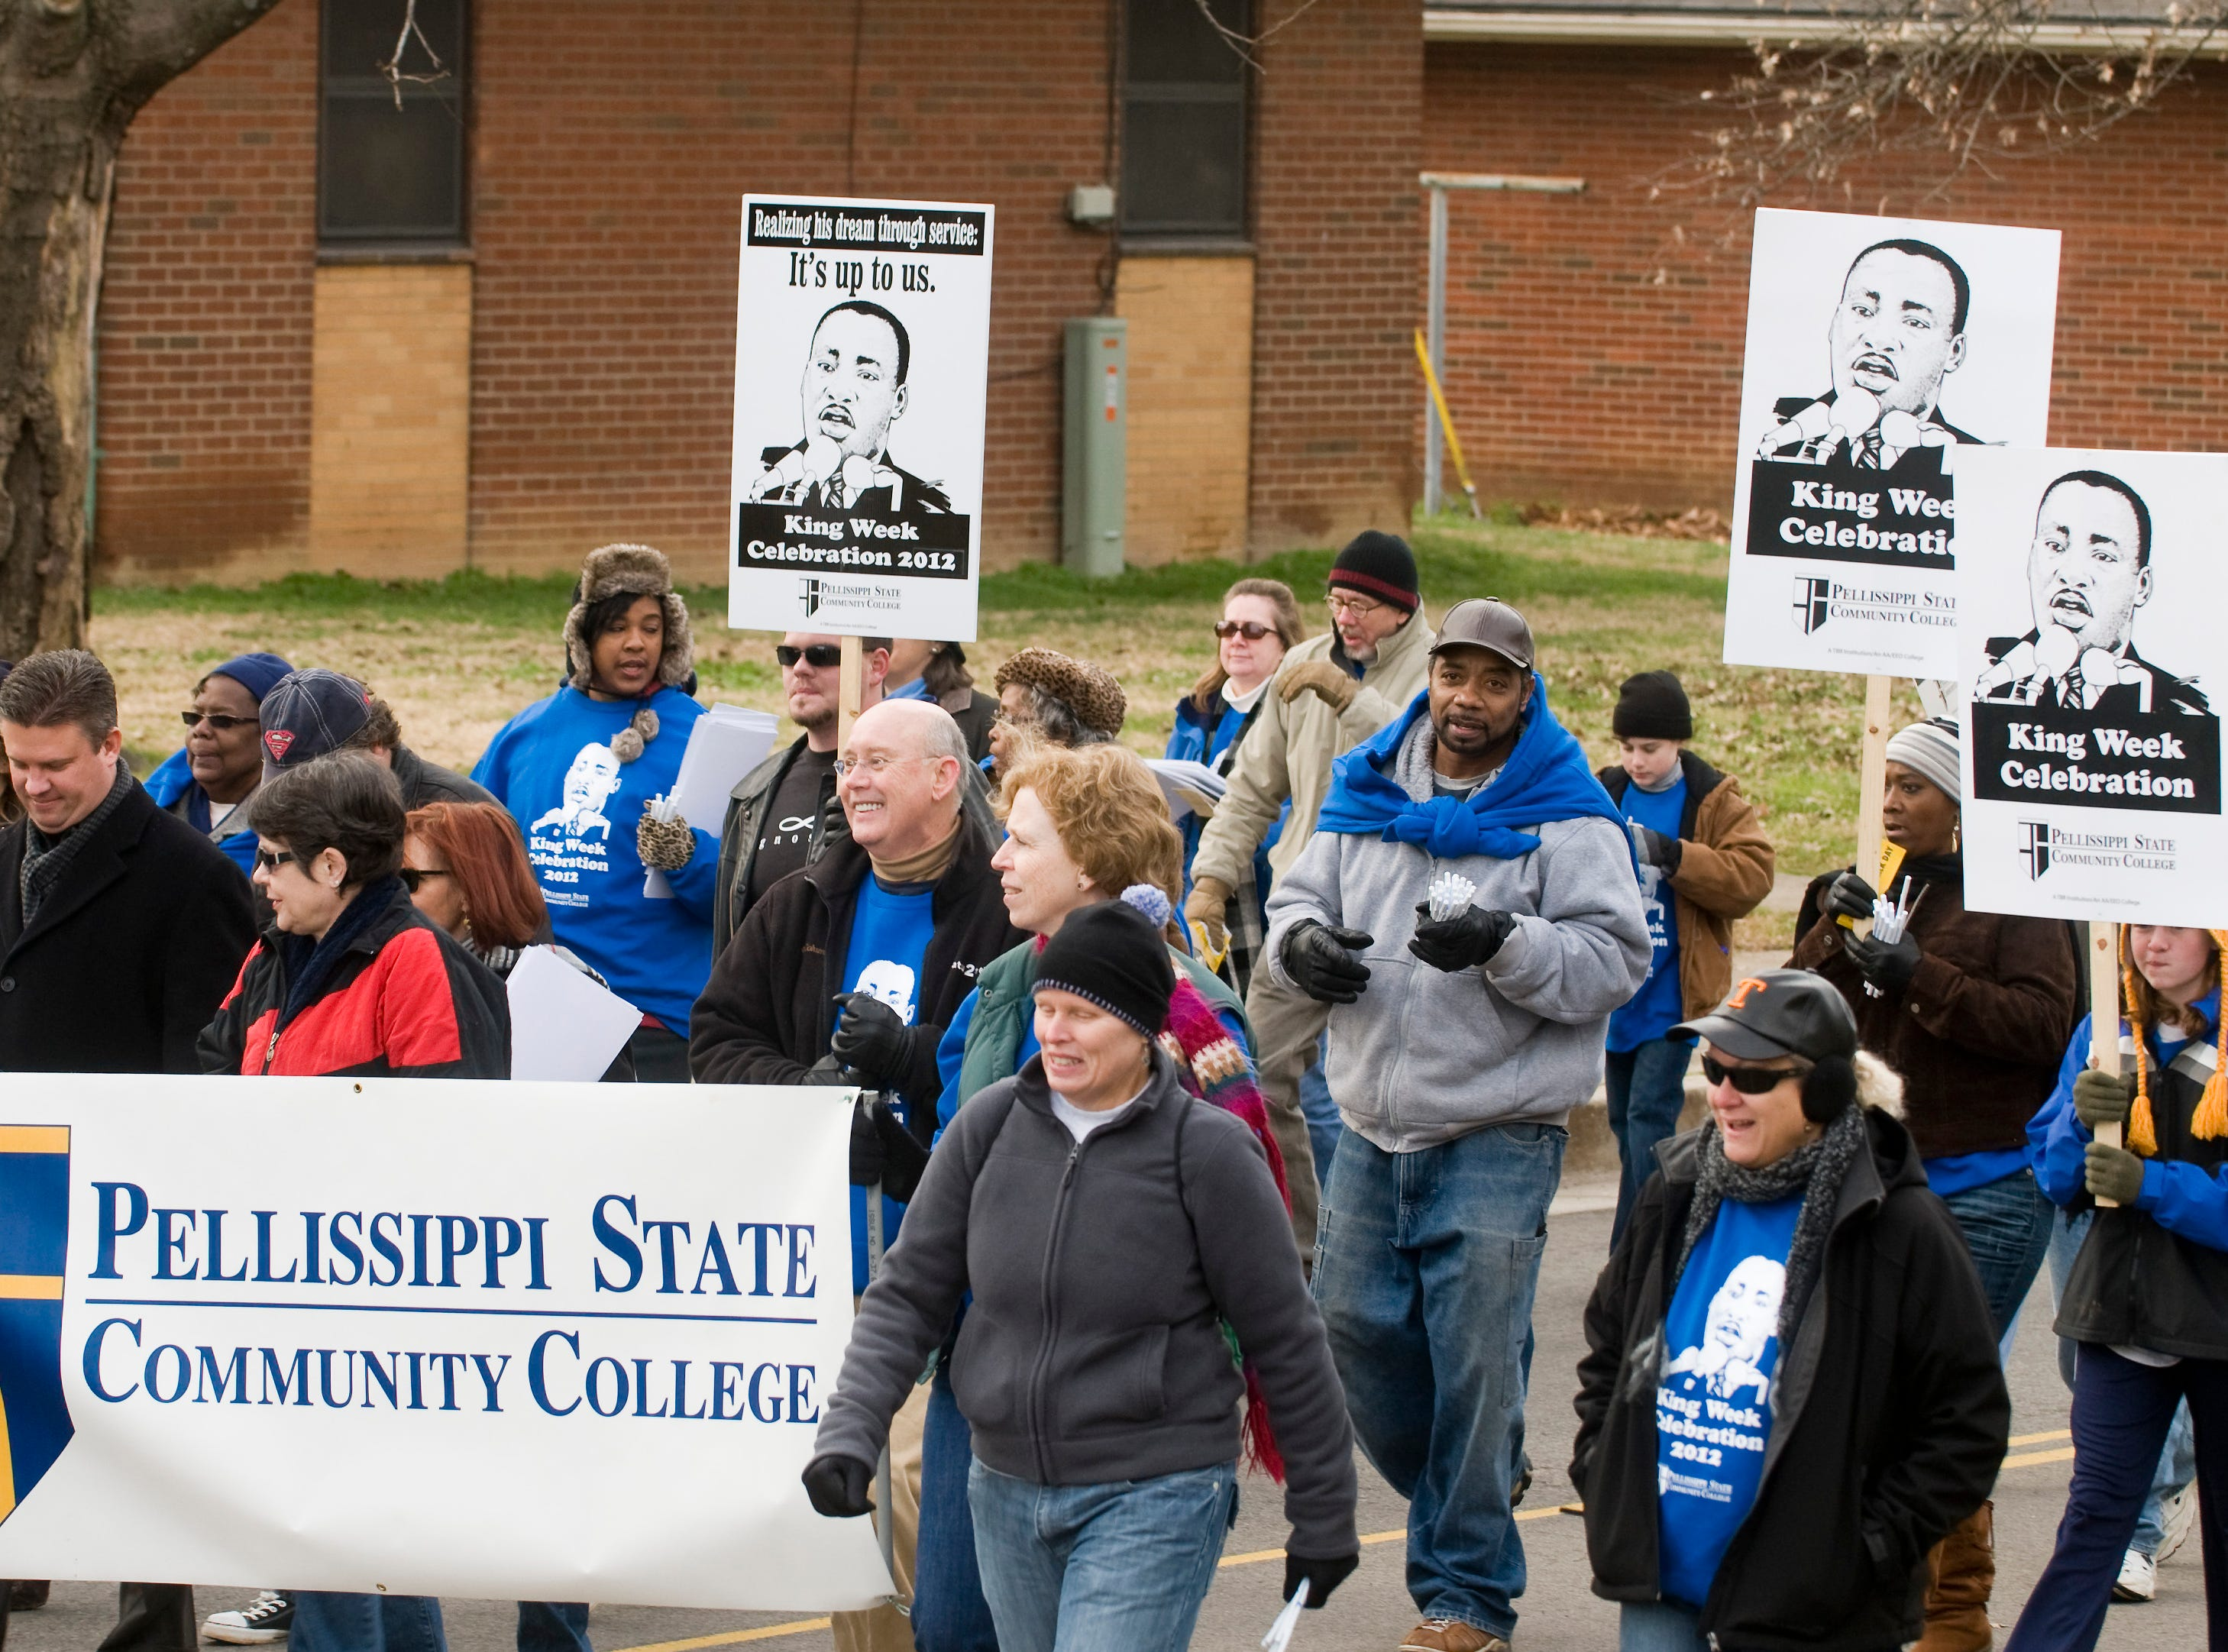 Members of Pellissippi State Community College.  The annual Dr. Martin Luther King, Jr. Memorial Parade starts at 10am at Tabernacle Baptist Church, 2137 Martin Luther King, Jr., Blvd. and ended at Greater Warner Tabernacle AME Zion Church, 3800 Martin Luther King Jr. Avenue. Hundreds of people and groups  including local elected officials marched the one and a half miles from start to finish. After the parade the Dr. Martin Luther King, Jr. Memorial Service was held at the Warner Tabernacle AME Zion Church with  Rev. Dr. Charles E. Goodman, Jr., senior pastor of Tabernacle Baptist Church in Augusta, Ga., is the guest speaker. Music by the Martin Luther King Holiday Celebration Choir directed Aaron Staple.  (J. MILES CARY/NEWS SENTINEL )